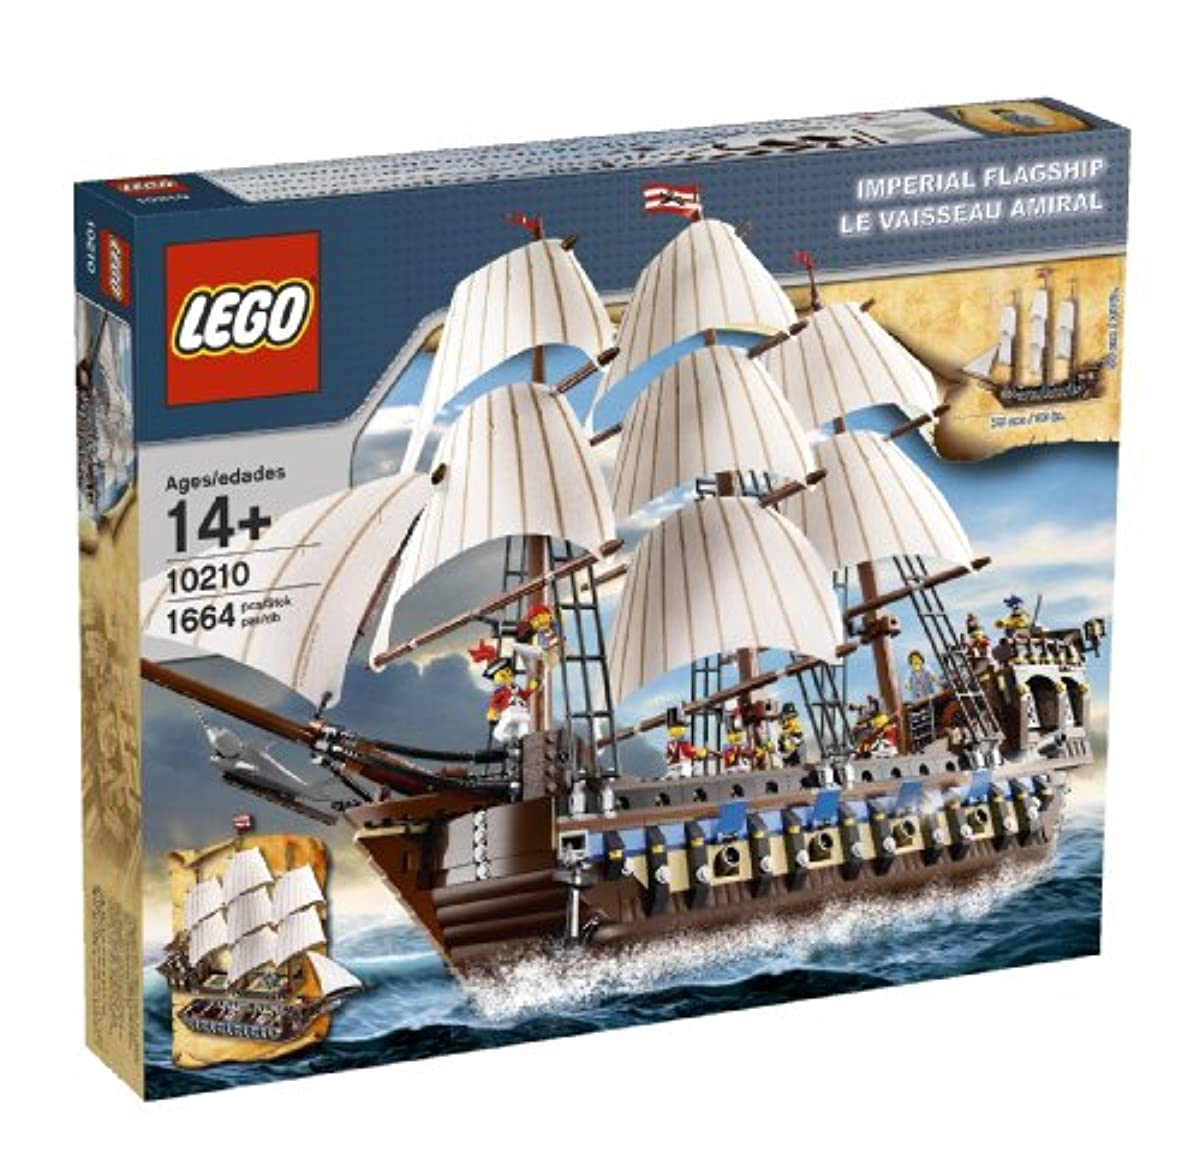 [레고 해적 해적선] LEGO Pirates Imperial Flagship (10210) (Discontinued by manufacturer)